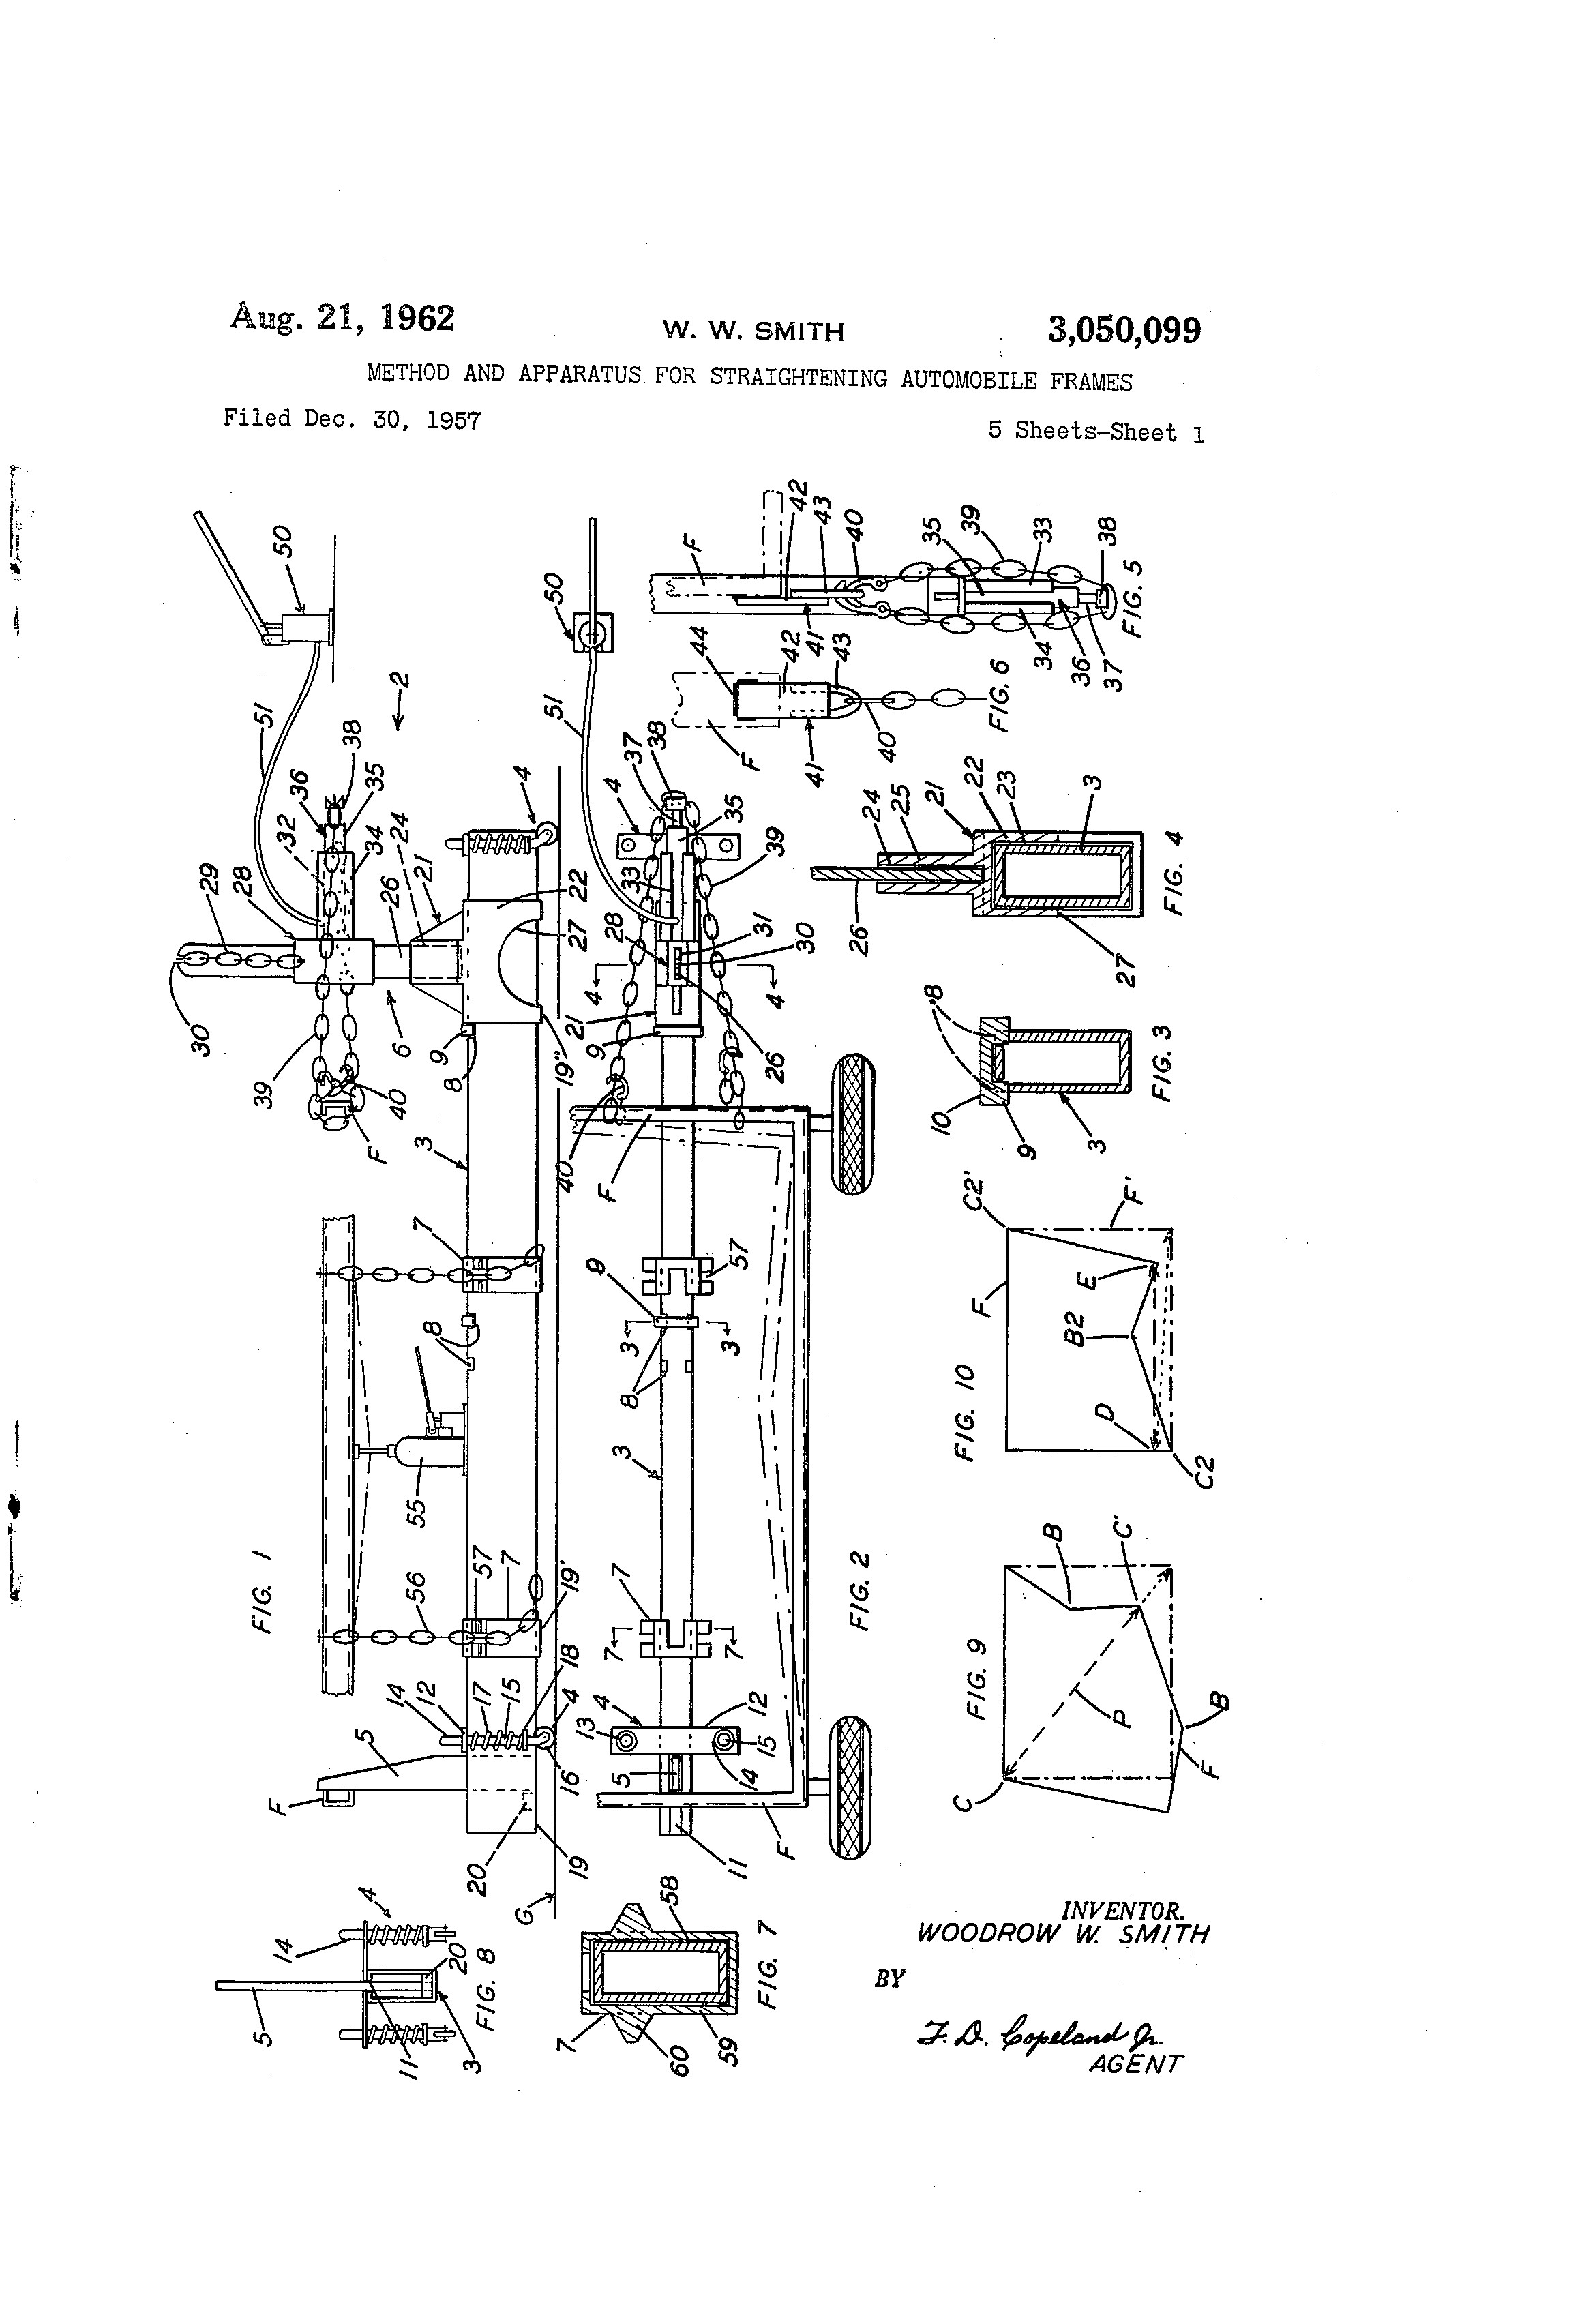 medium resolution of us3050099a method and apparatus for straightening automobile frames google patents